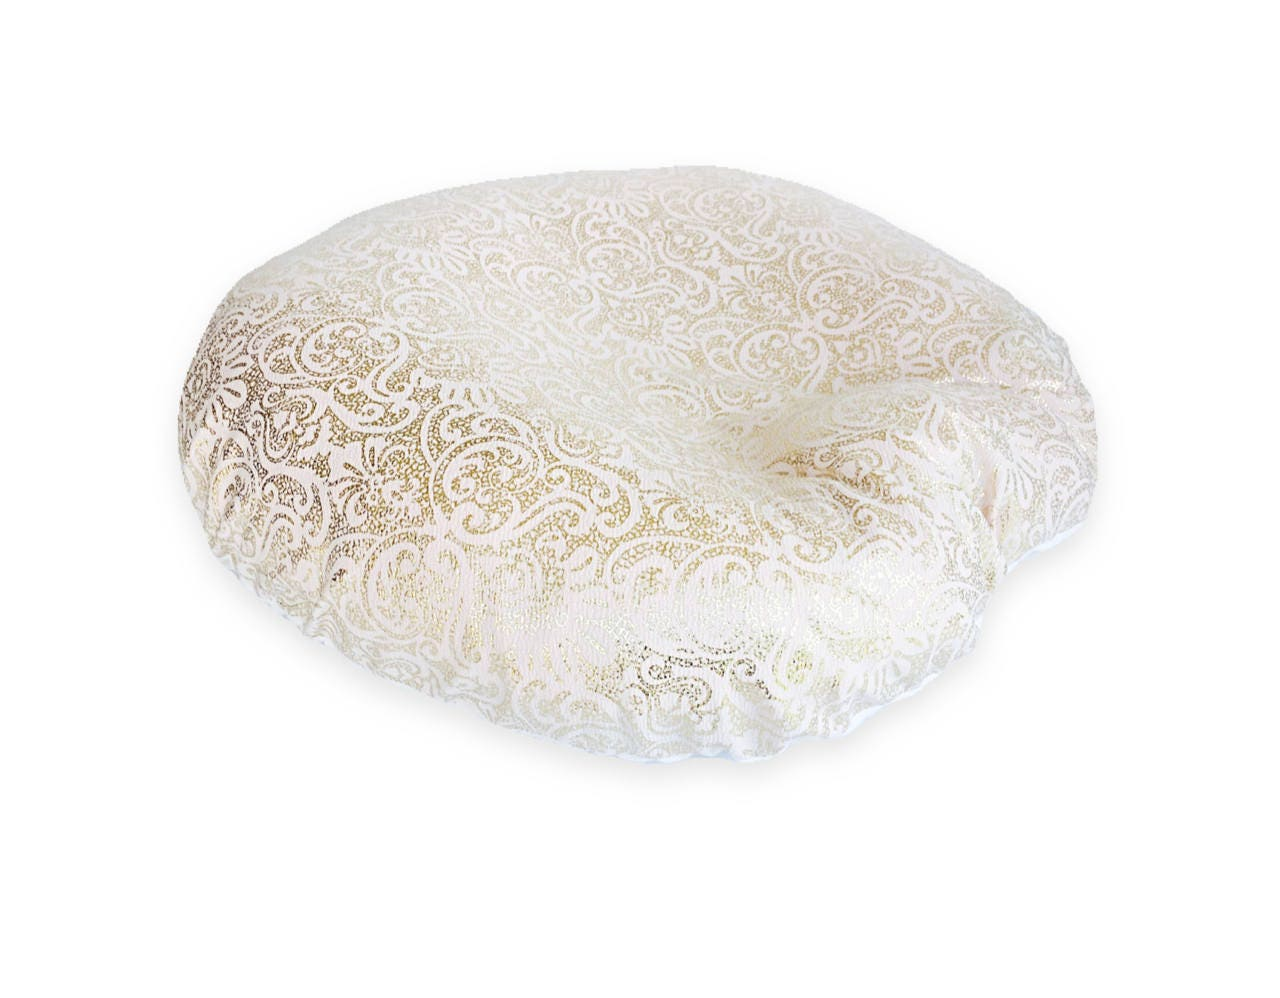 Newborn Lounger Boppy Cover Golden Damask Knit With Soft